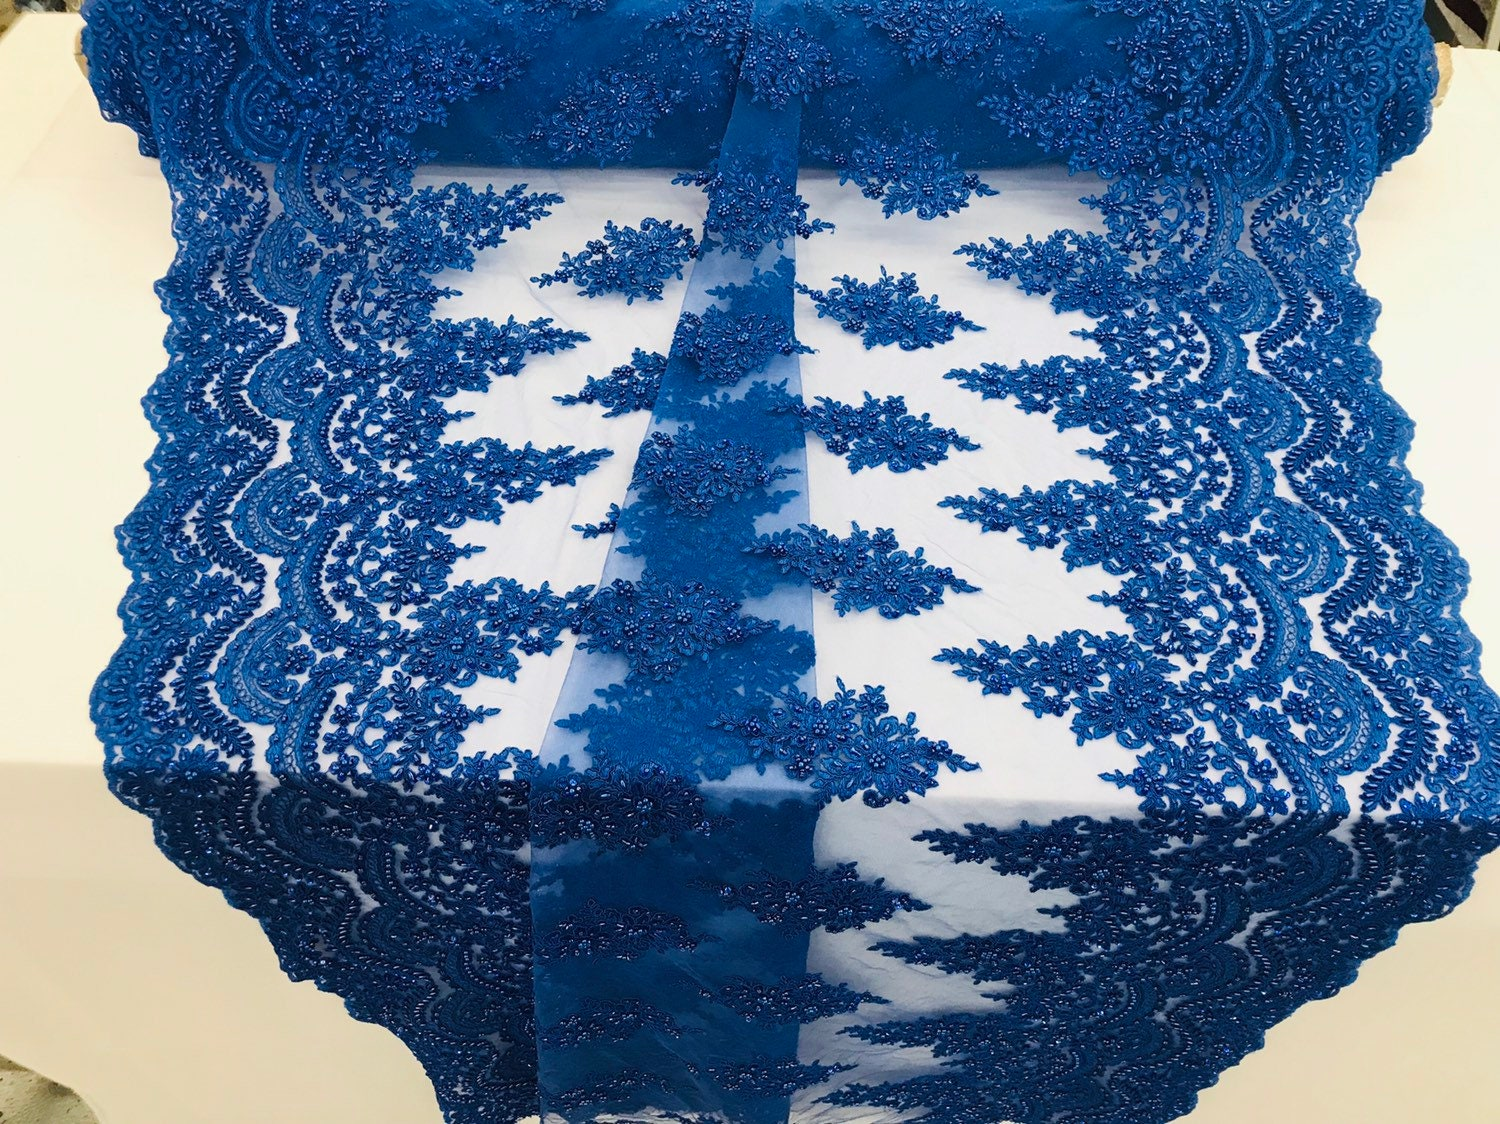 Royal Blue Beaded Fabric Embroider On A Mesh Lace-Bridal-Wedding-Prom By Yard